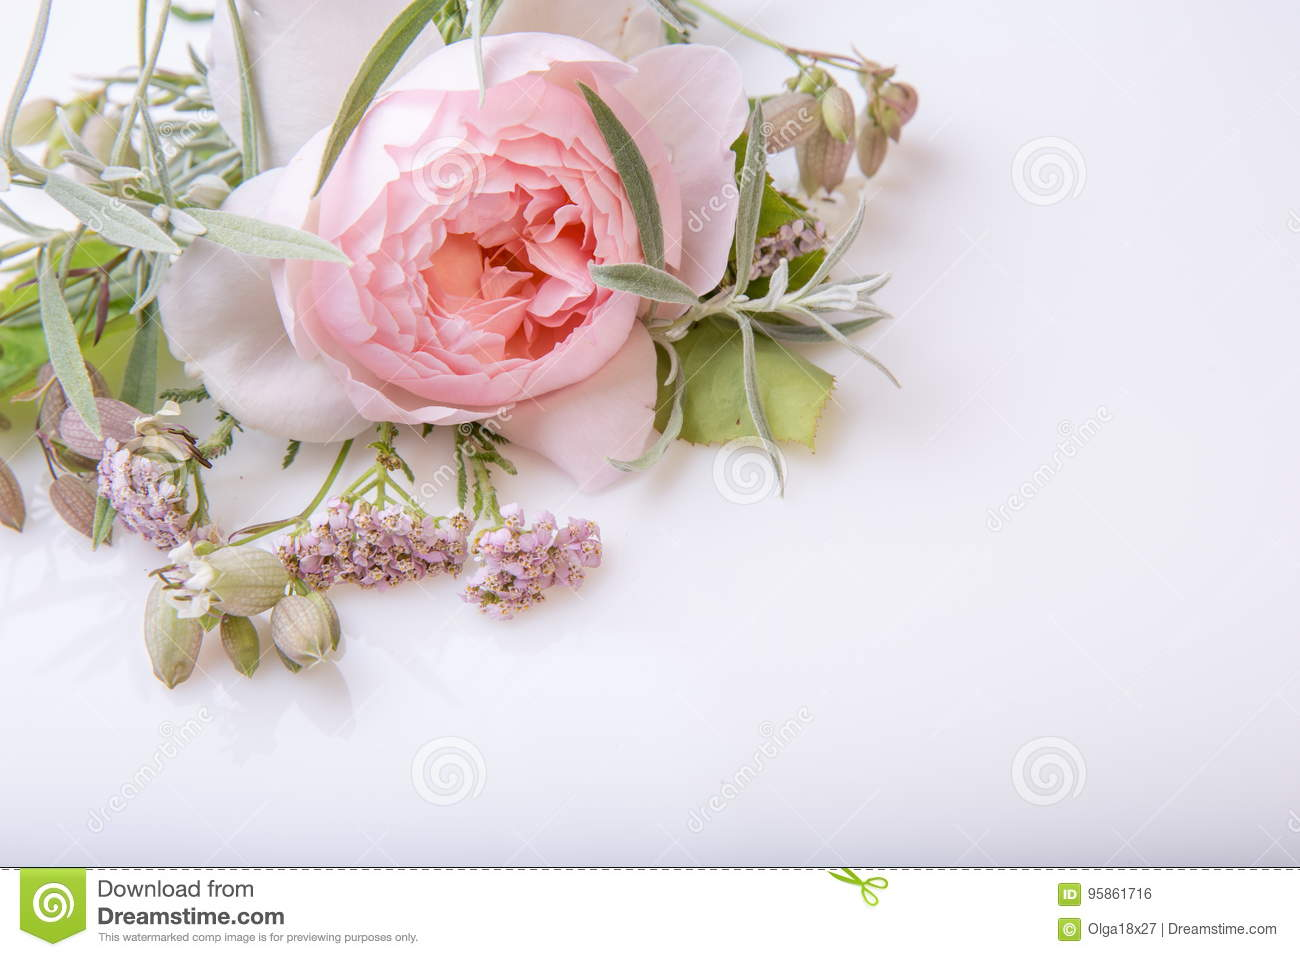 Beautiful english rose flower bouquet on white background stock beautiful english rose flower bouquet on white background izmirmasajfo